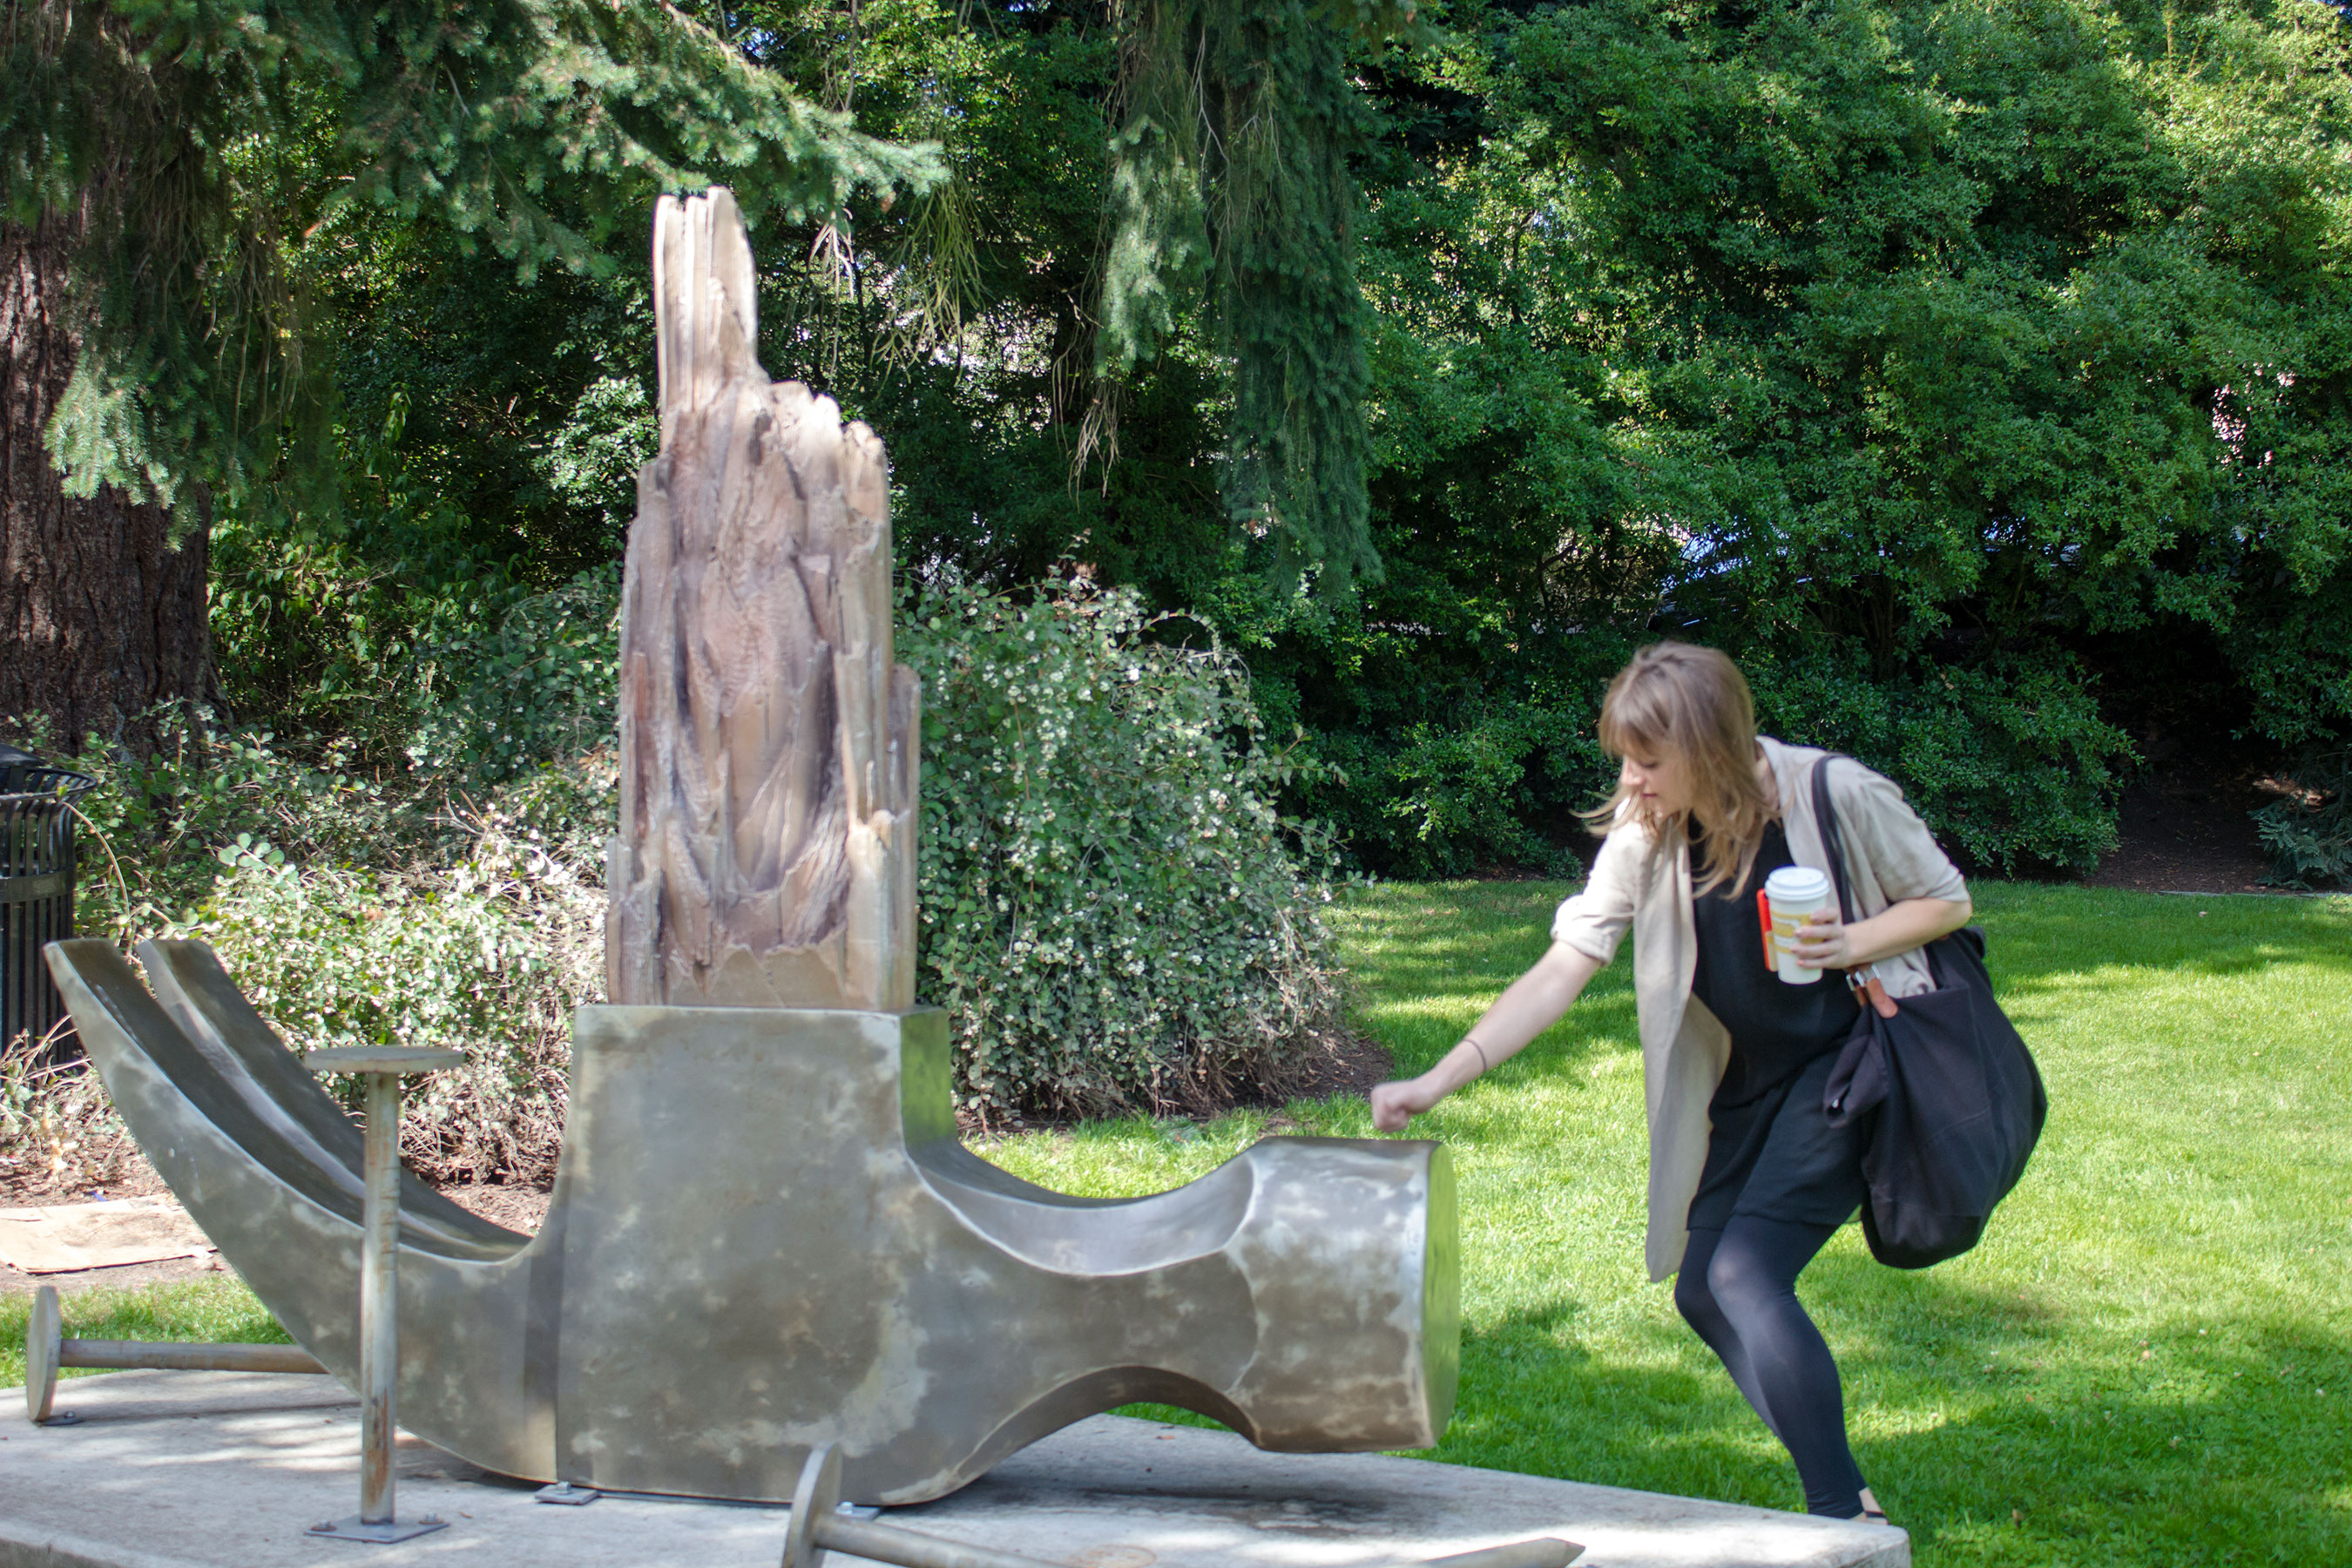 Female knocks on giant upside down metal hammer sculpture with broken wood handle and oversize nails in Lake Oswego park